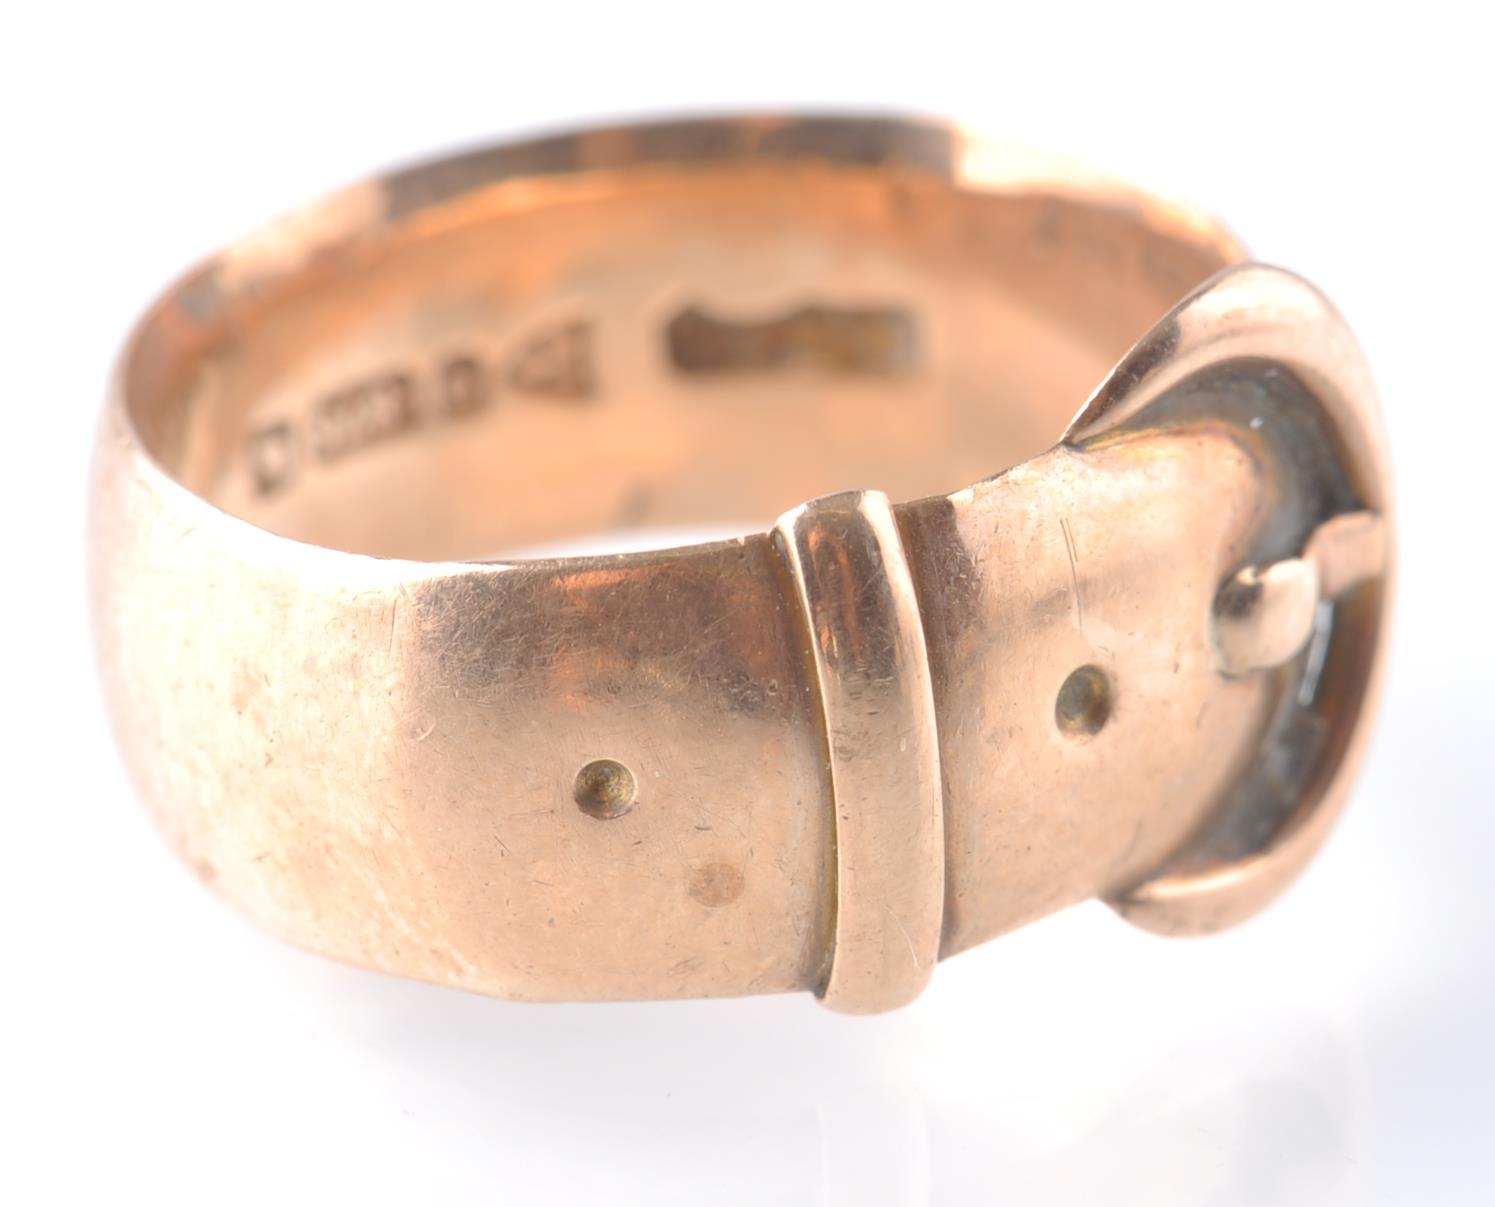 EDWARDIAN 1909 18CT GOLD CHESTER HALLMARKED BUCKLE - Image 2 of 4